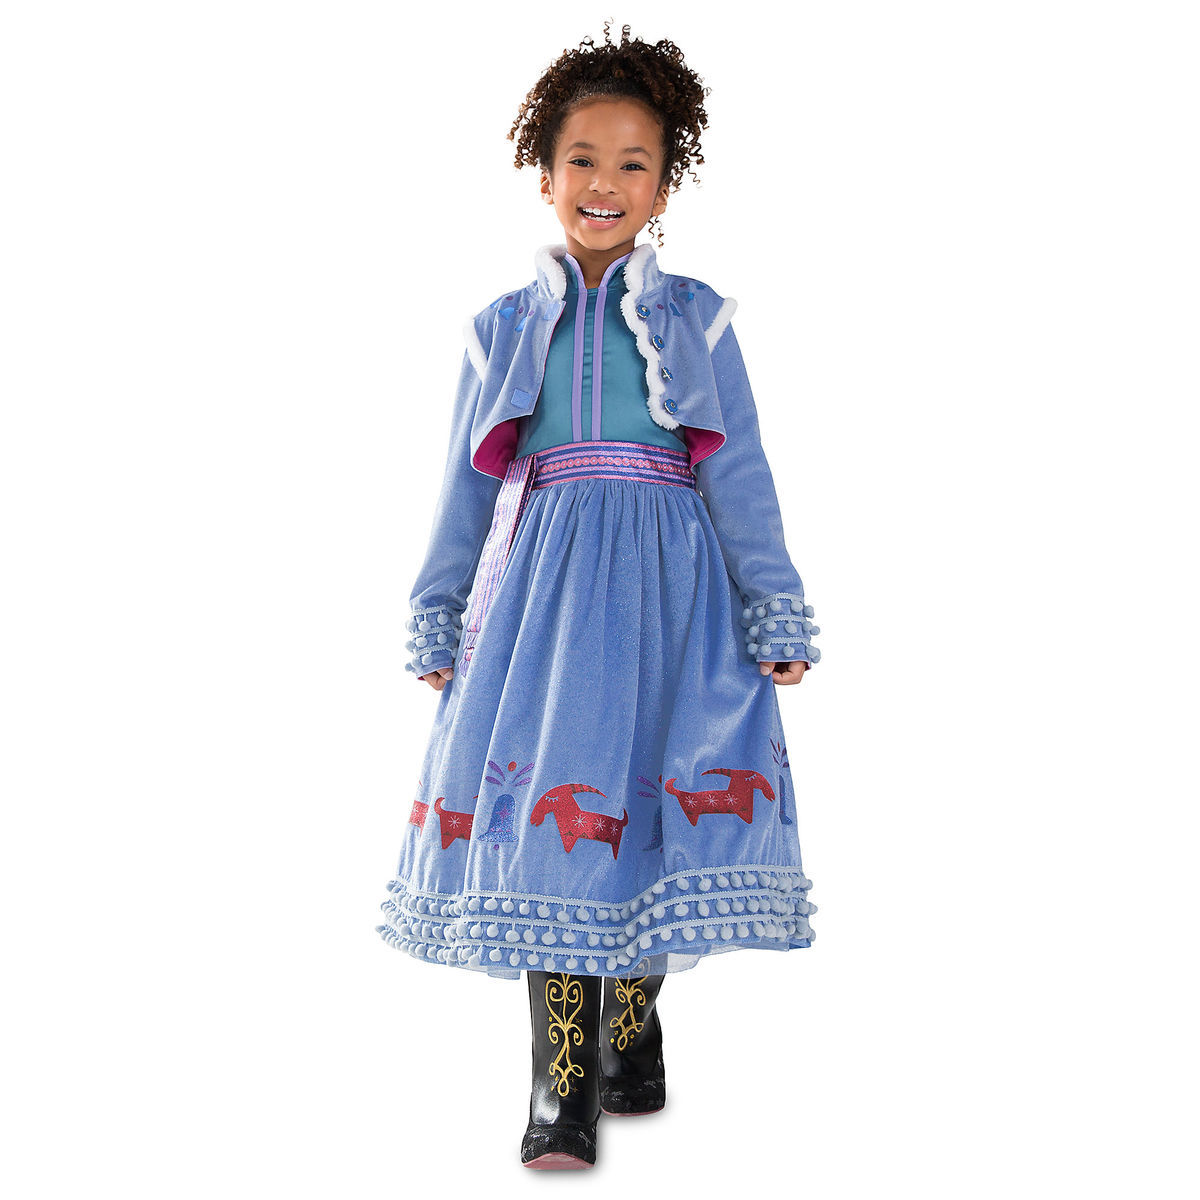 a36ae6ed7 Anna Deluxe Costume for Kids - Olaf s Frozen Adventure